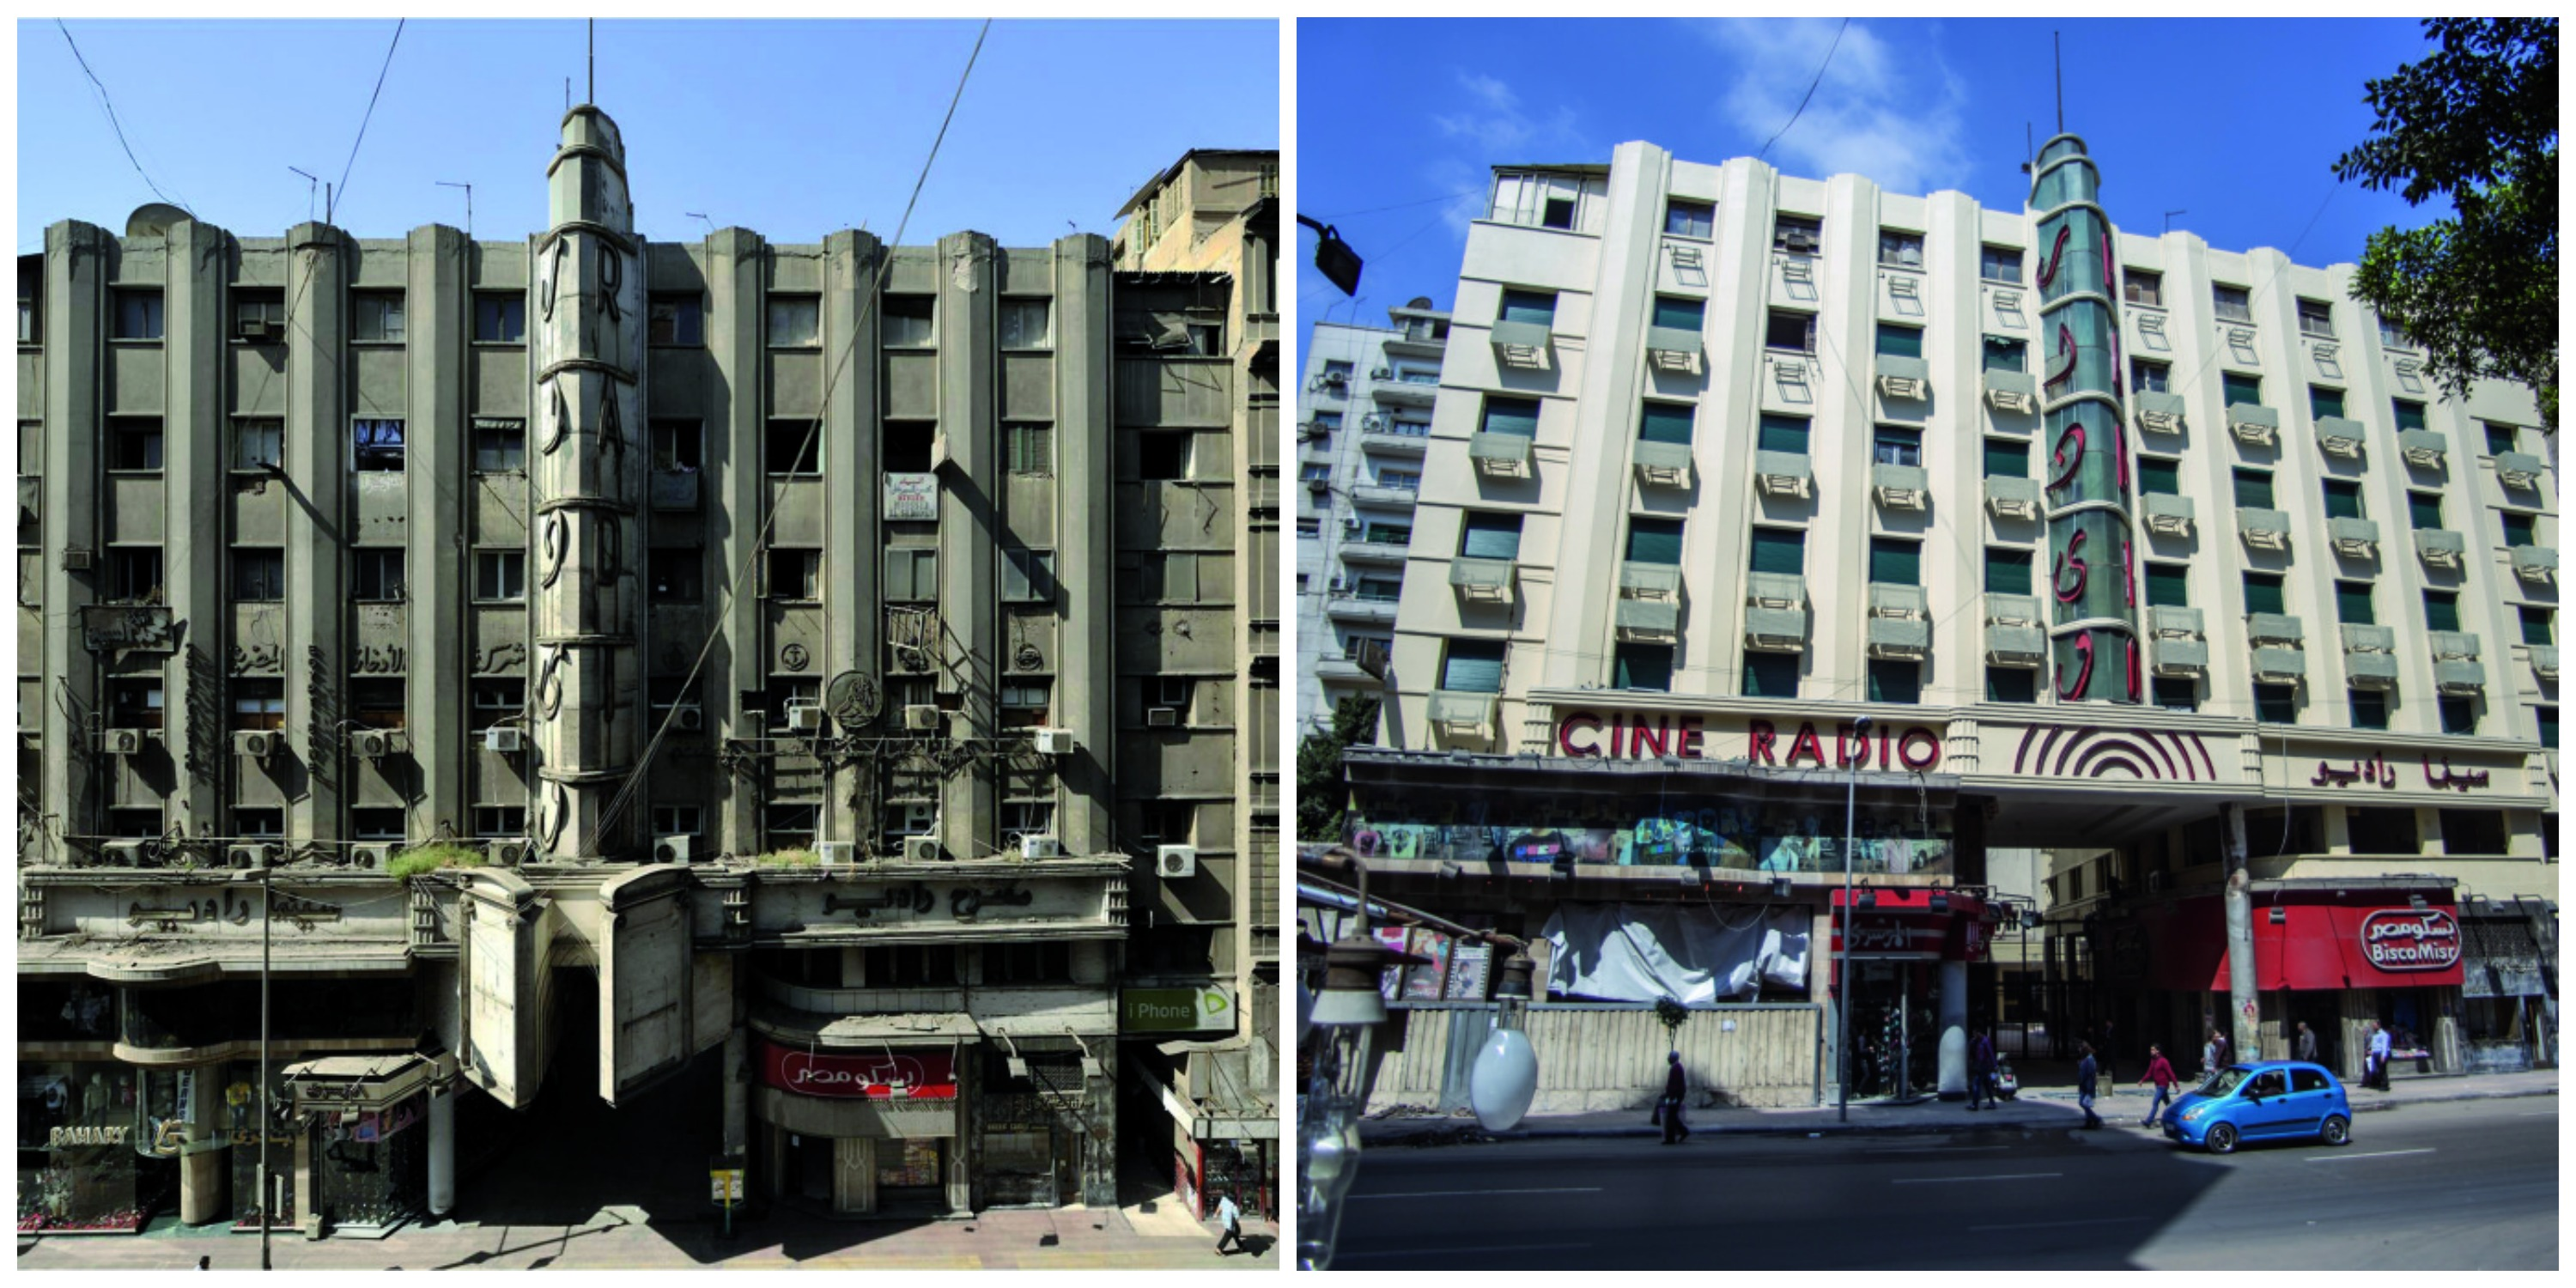 Cinema Radio before (left) and after (right), courtesy of Al-Ismaelia